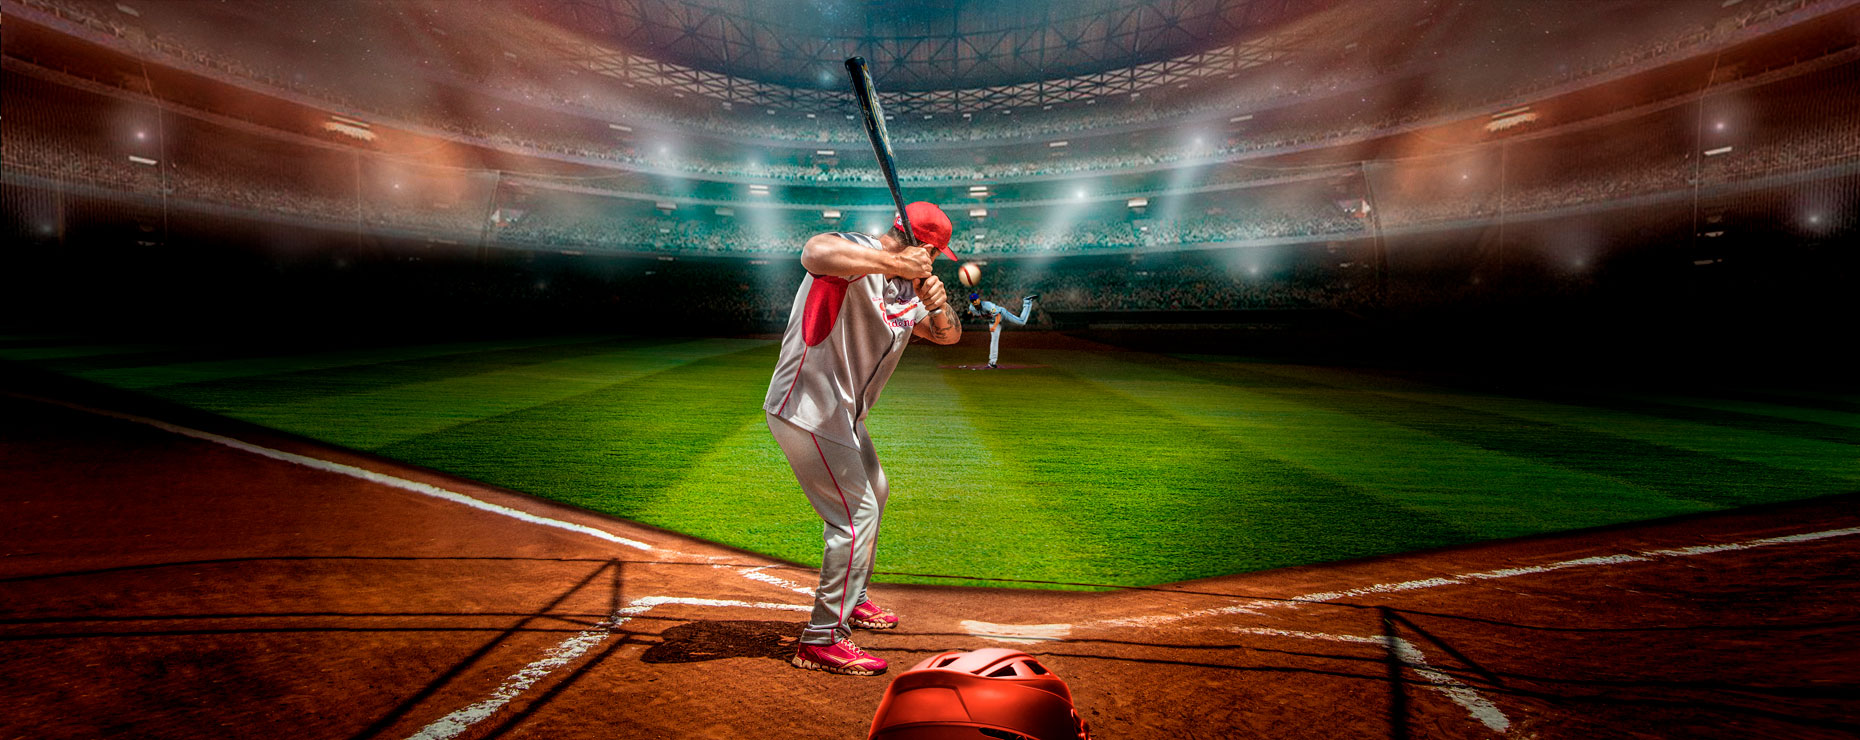 Baseball photography | by Kate Voskova